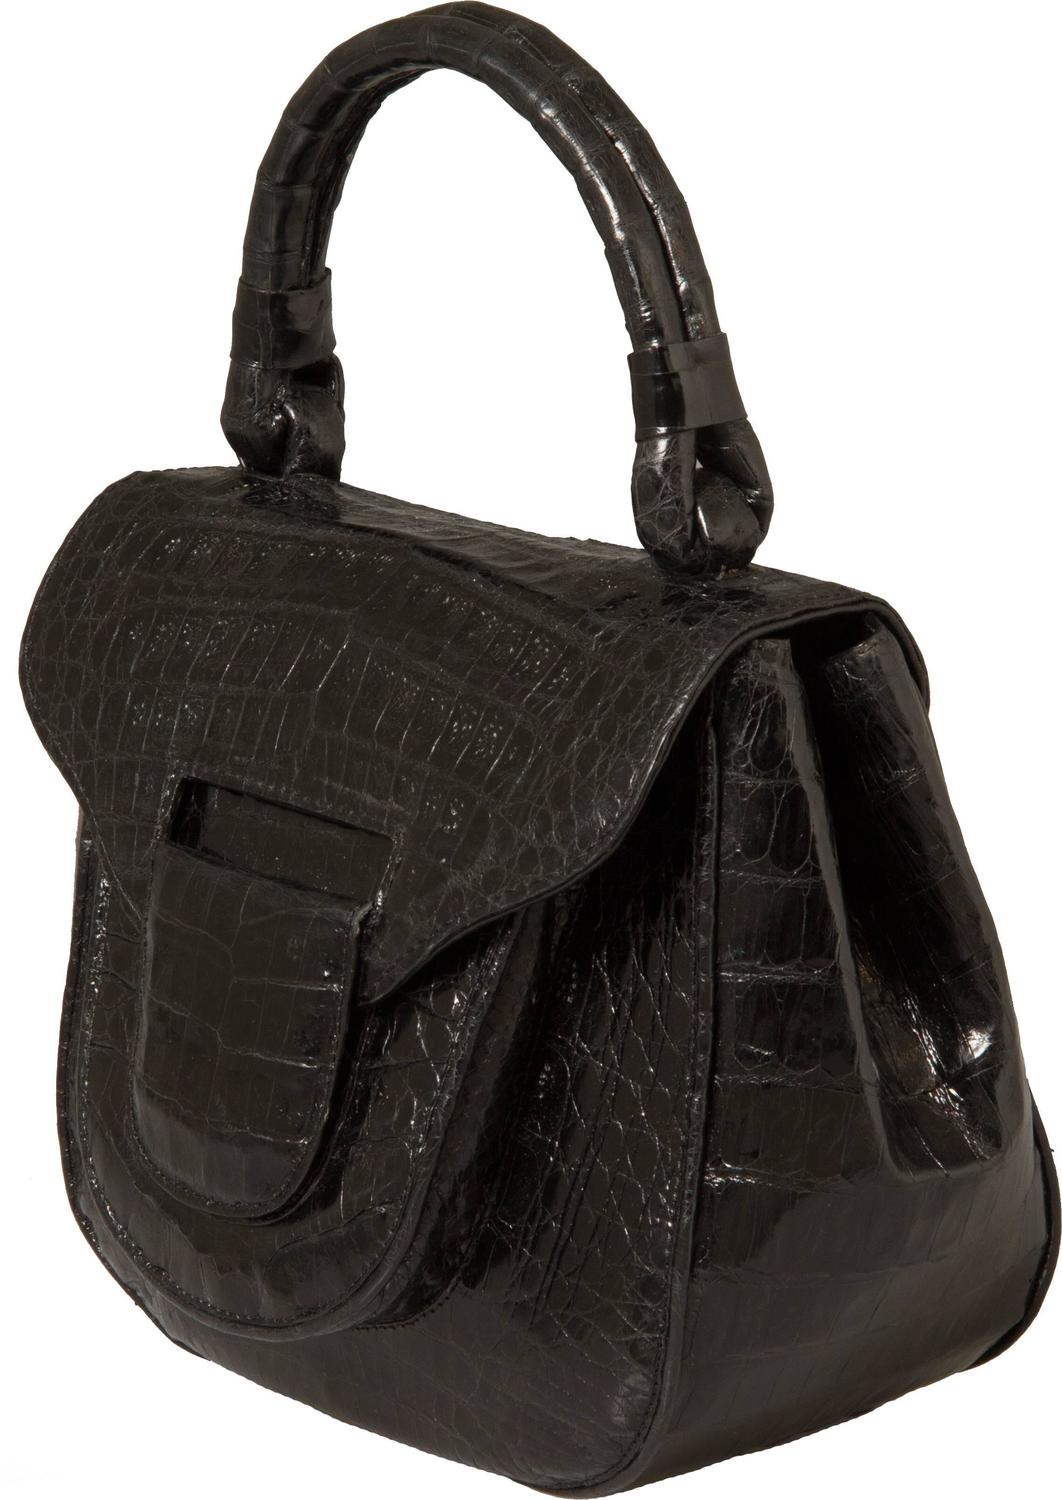 Nancy gonzalez black crocodile handbag at 1stdibs for Nancy gonzalez crocodile tote